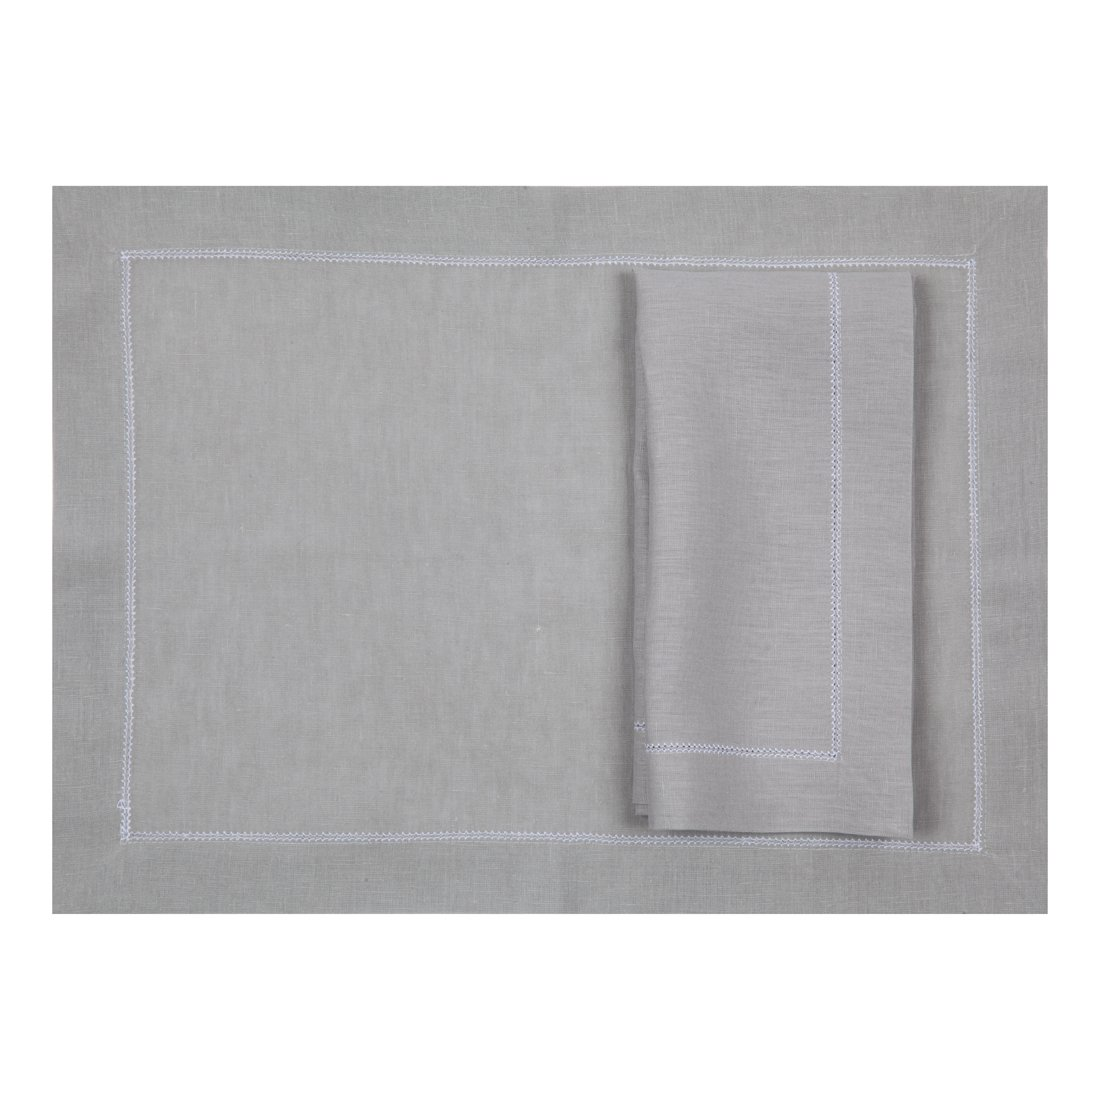 Silver Grey Linen Placemat With Contrast White Hemstitch (Set of Six)